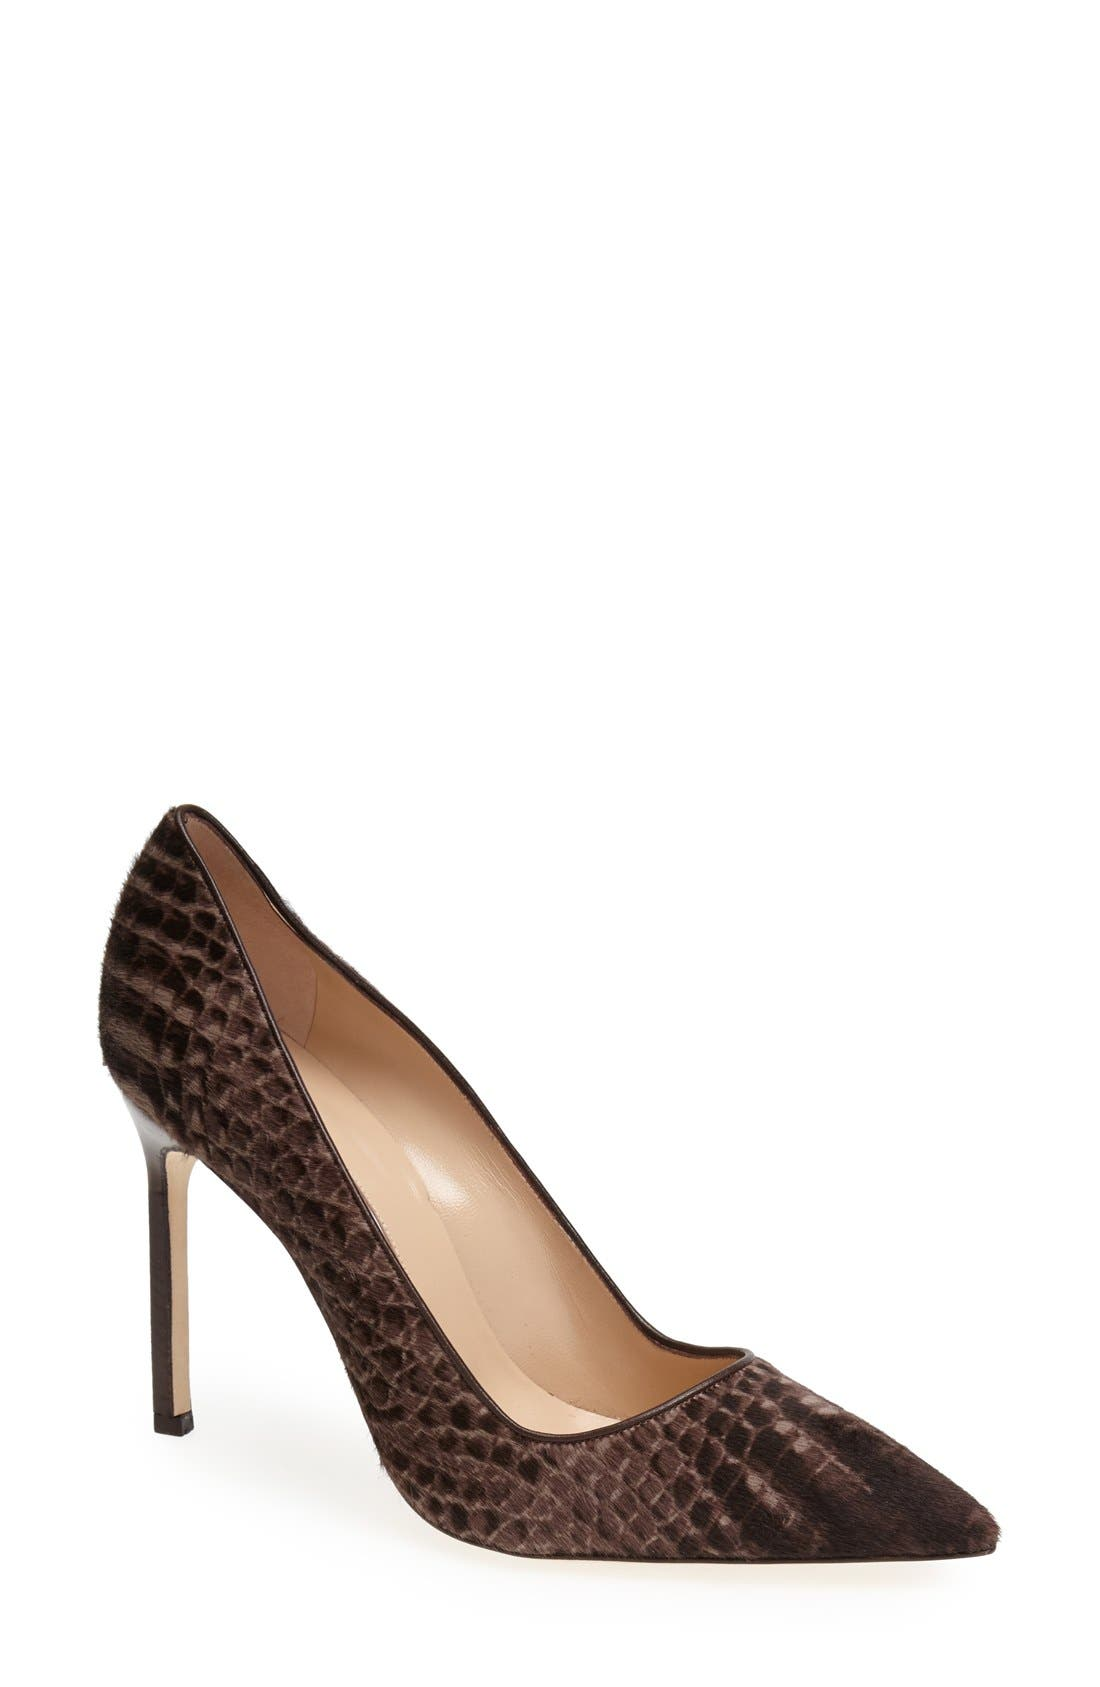 Alternate Image 1 Selected - Manolo Blahnik 'BB' Calf Hair Pump (Women)